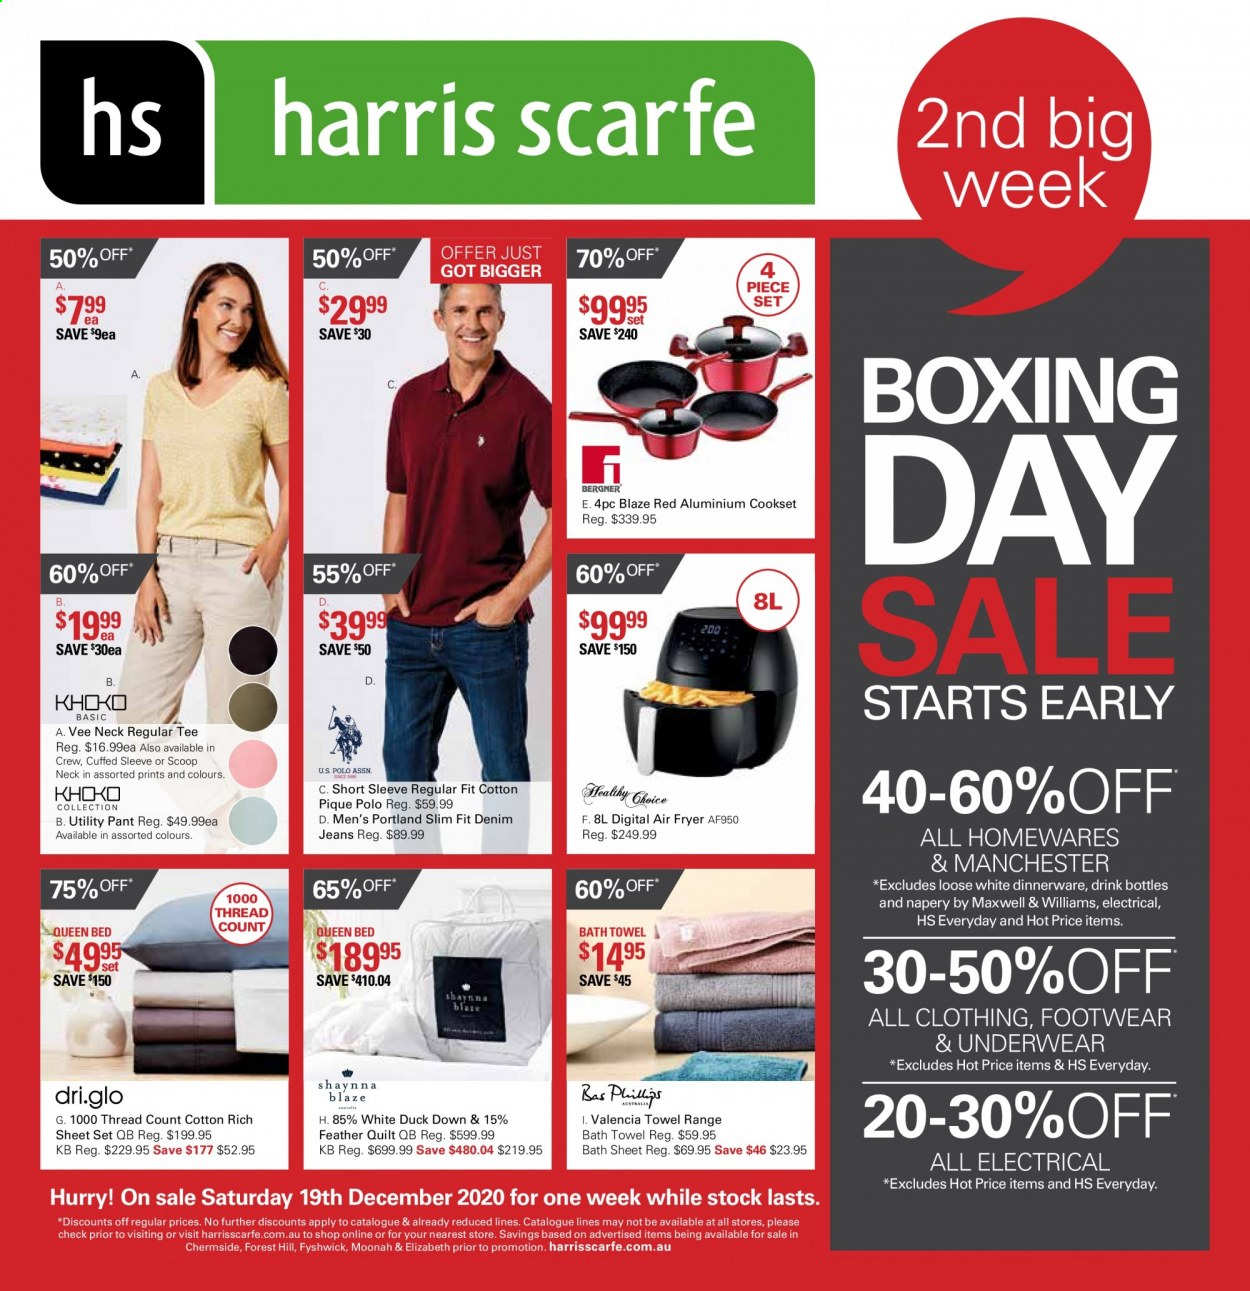 Harris Scarfe Catalogue - Sales products - jeans, dinnerware set, sheet, quilt, bath sheet, bath towel, towel, fryer, air fryer, tee, underwear, bed. Page 1.